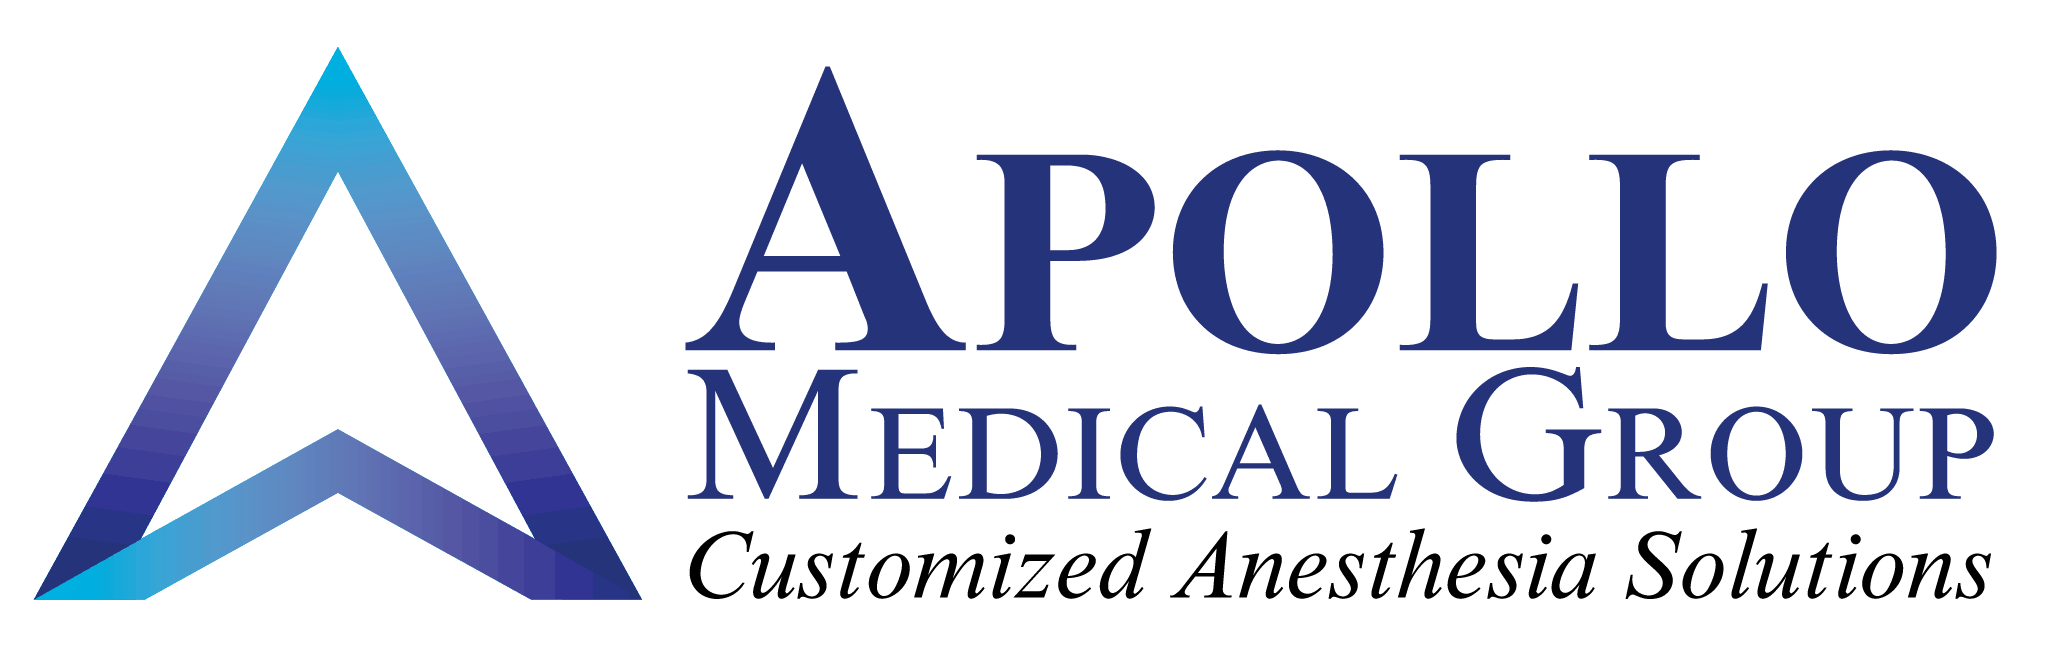 Apollo Medical Group